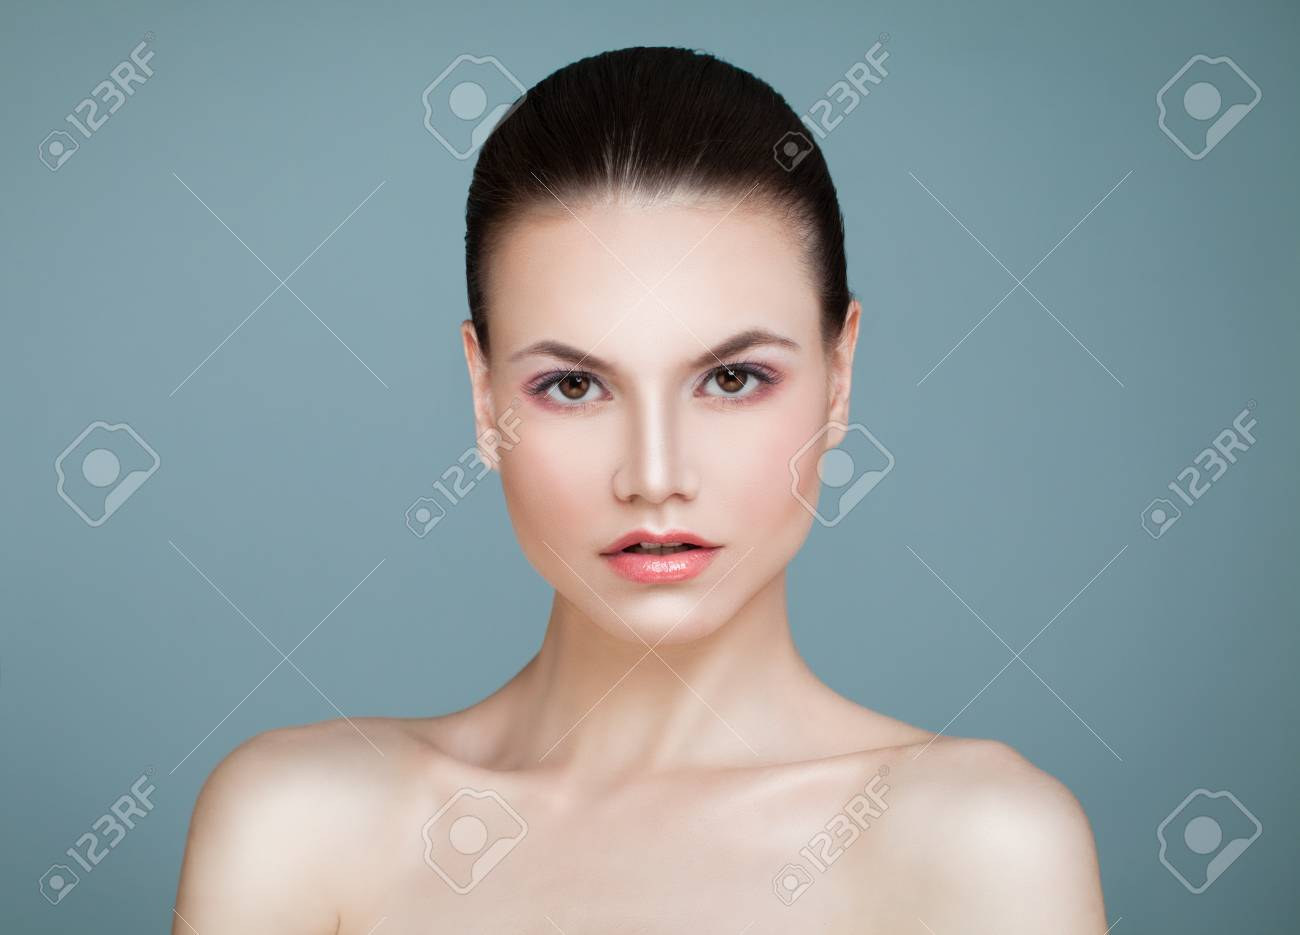 Spa Beauty  Young Woman with Healthy Skin on Blue Background